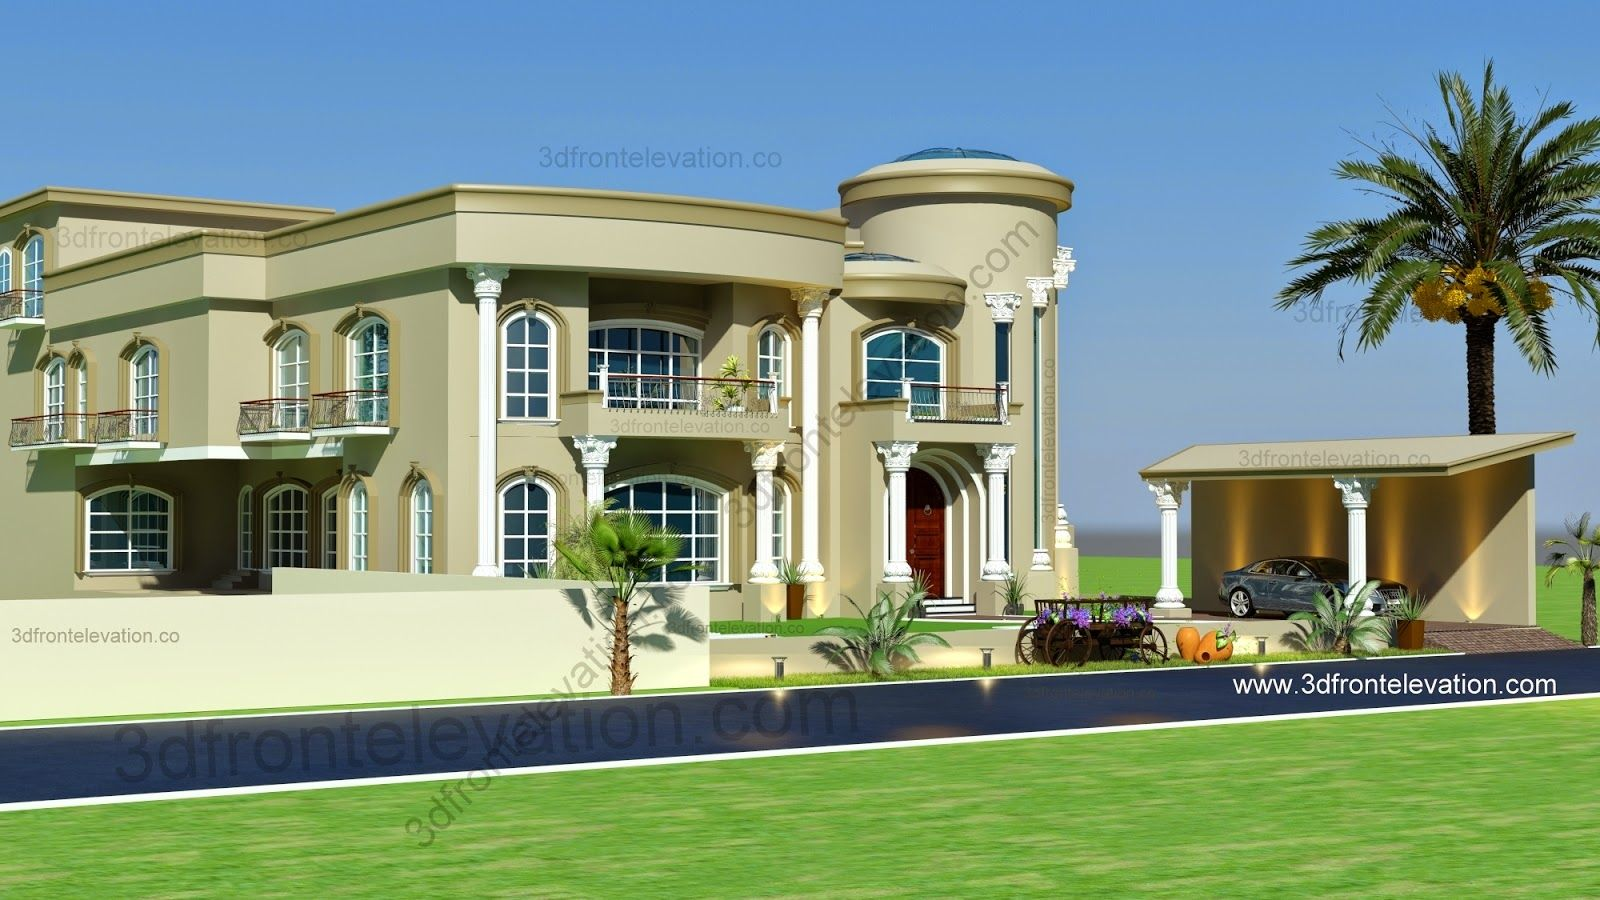 Modern arabic villa design 2015 3d front elevation pinterest villa design villas and modern - Modern villa designs ...